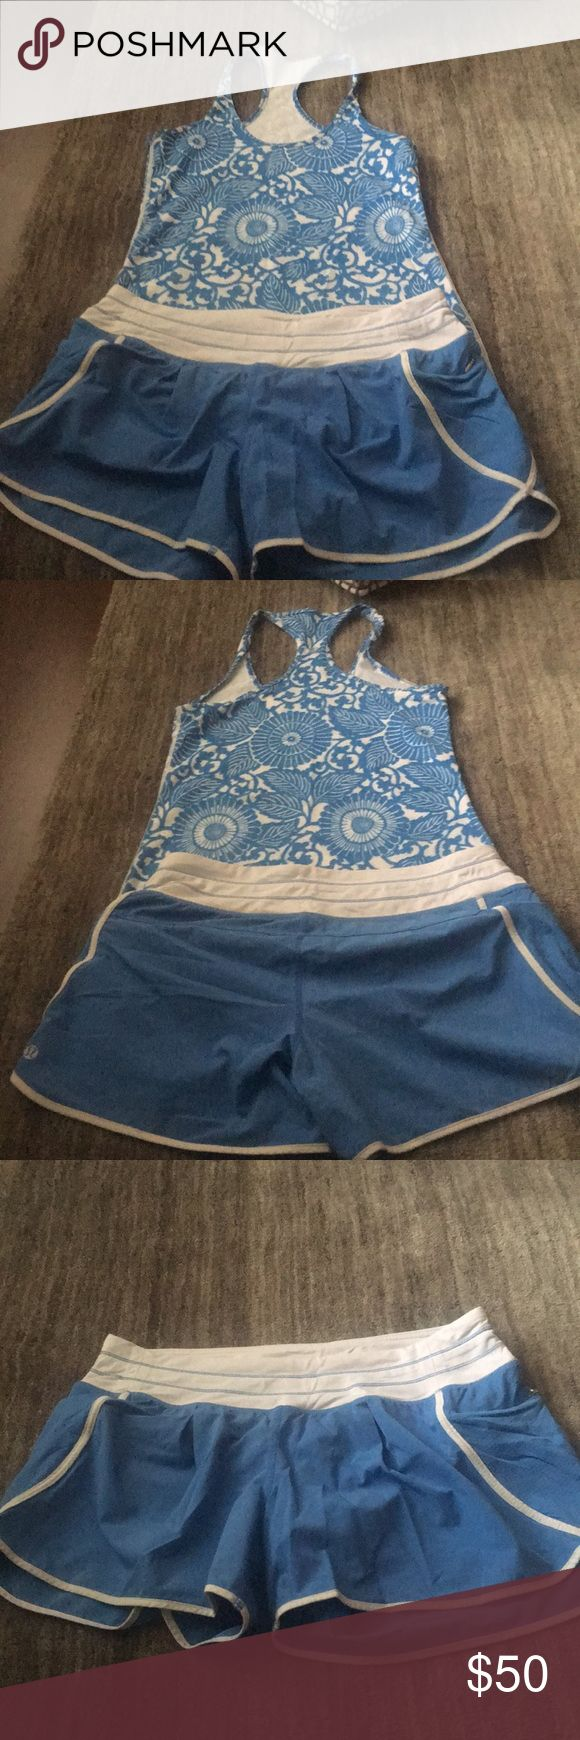 Lululemon Athletica racer back tank with shorts Lululemon Athletica blue and white design racer back with matching lined blue and white shorts. Excellent condition, non-smoking home, Price is firm lululemon athletica Shorts